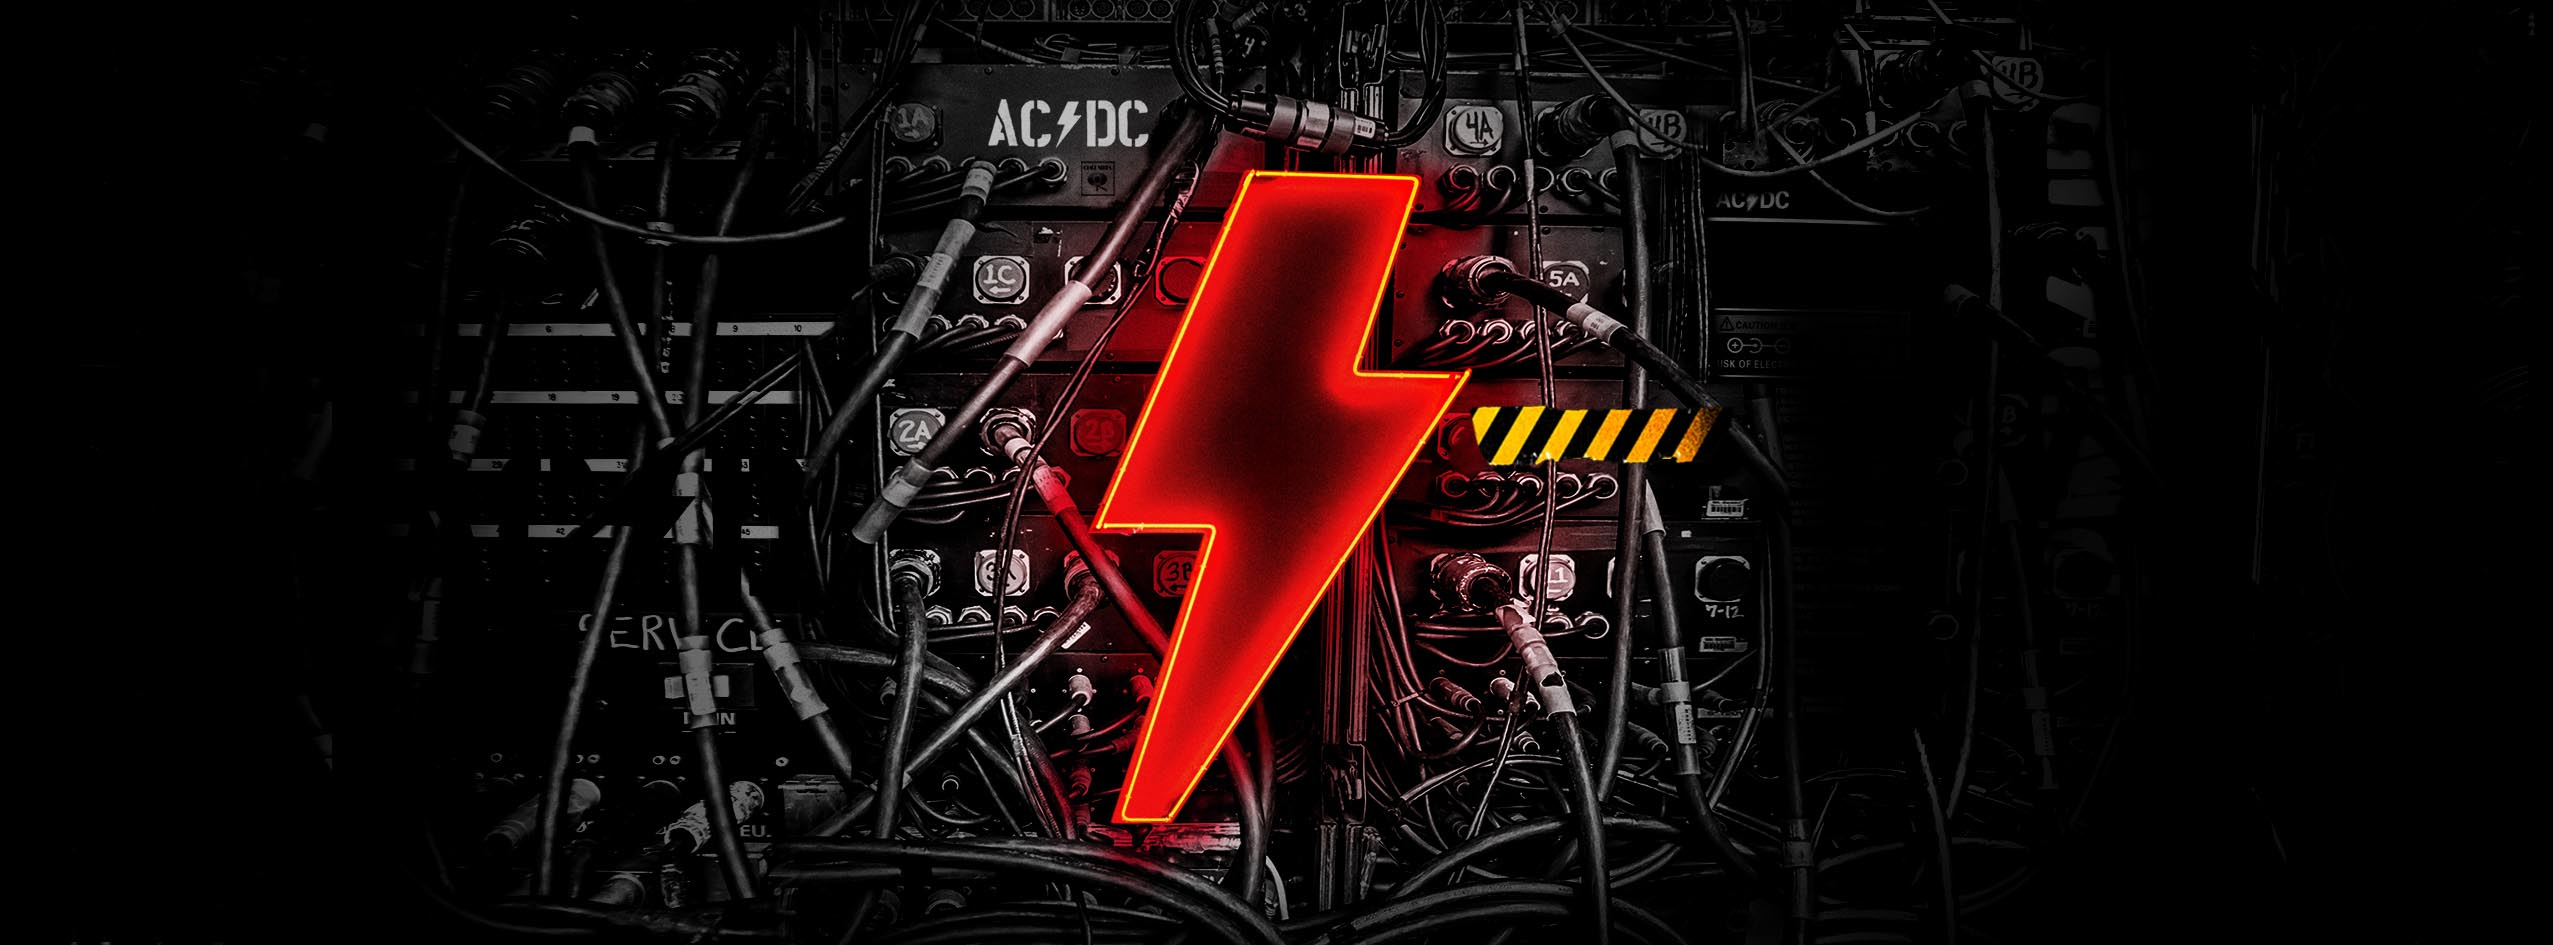 acdc 2020 pic 1